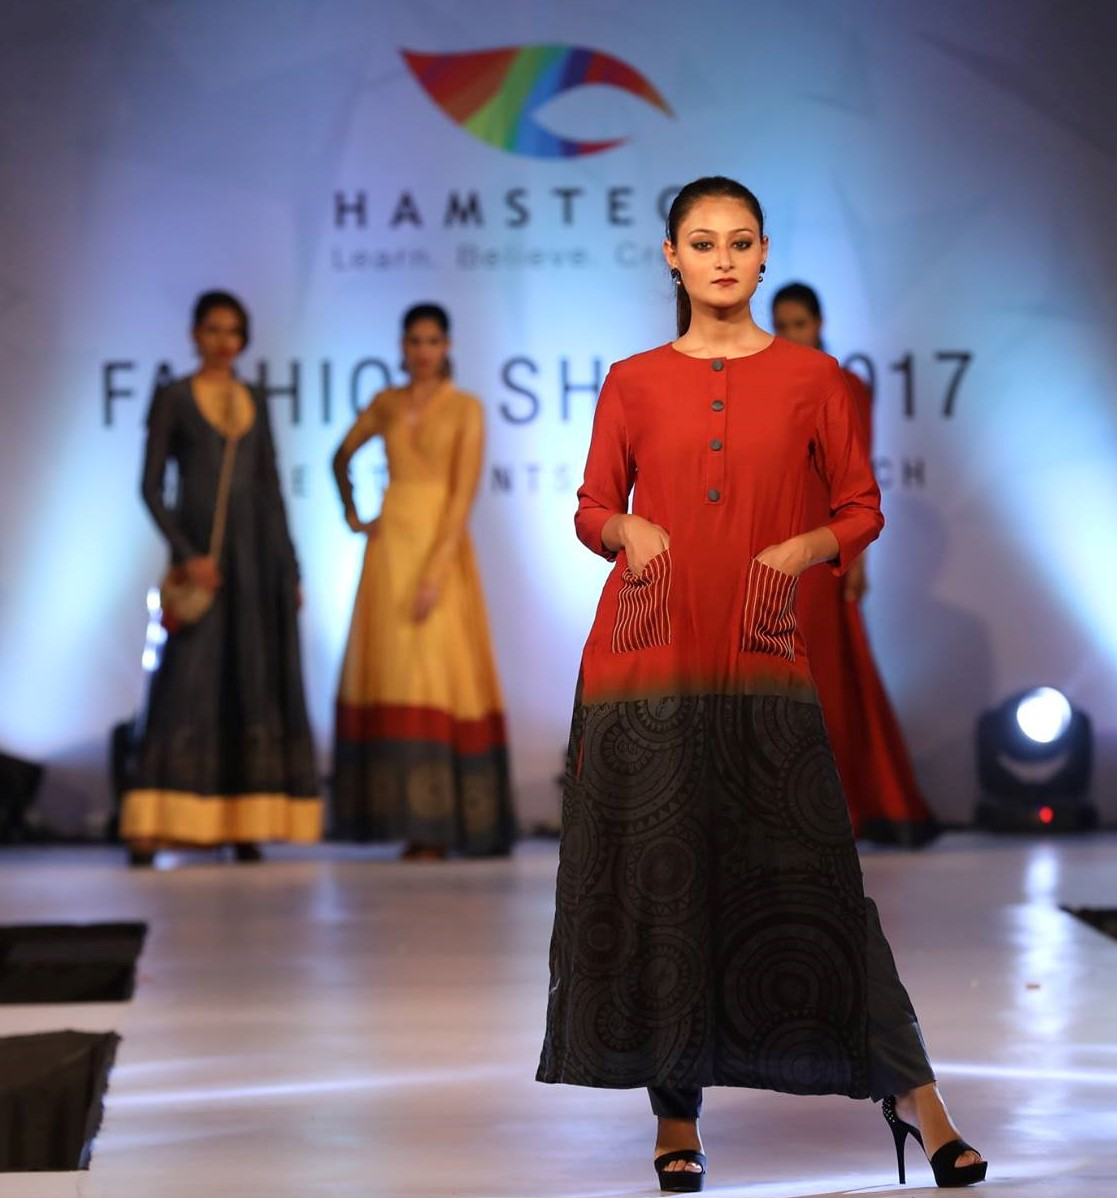 Travel to singapore with hamstech s fashion design course Fashion designing course subjects